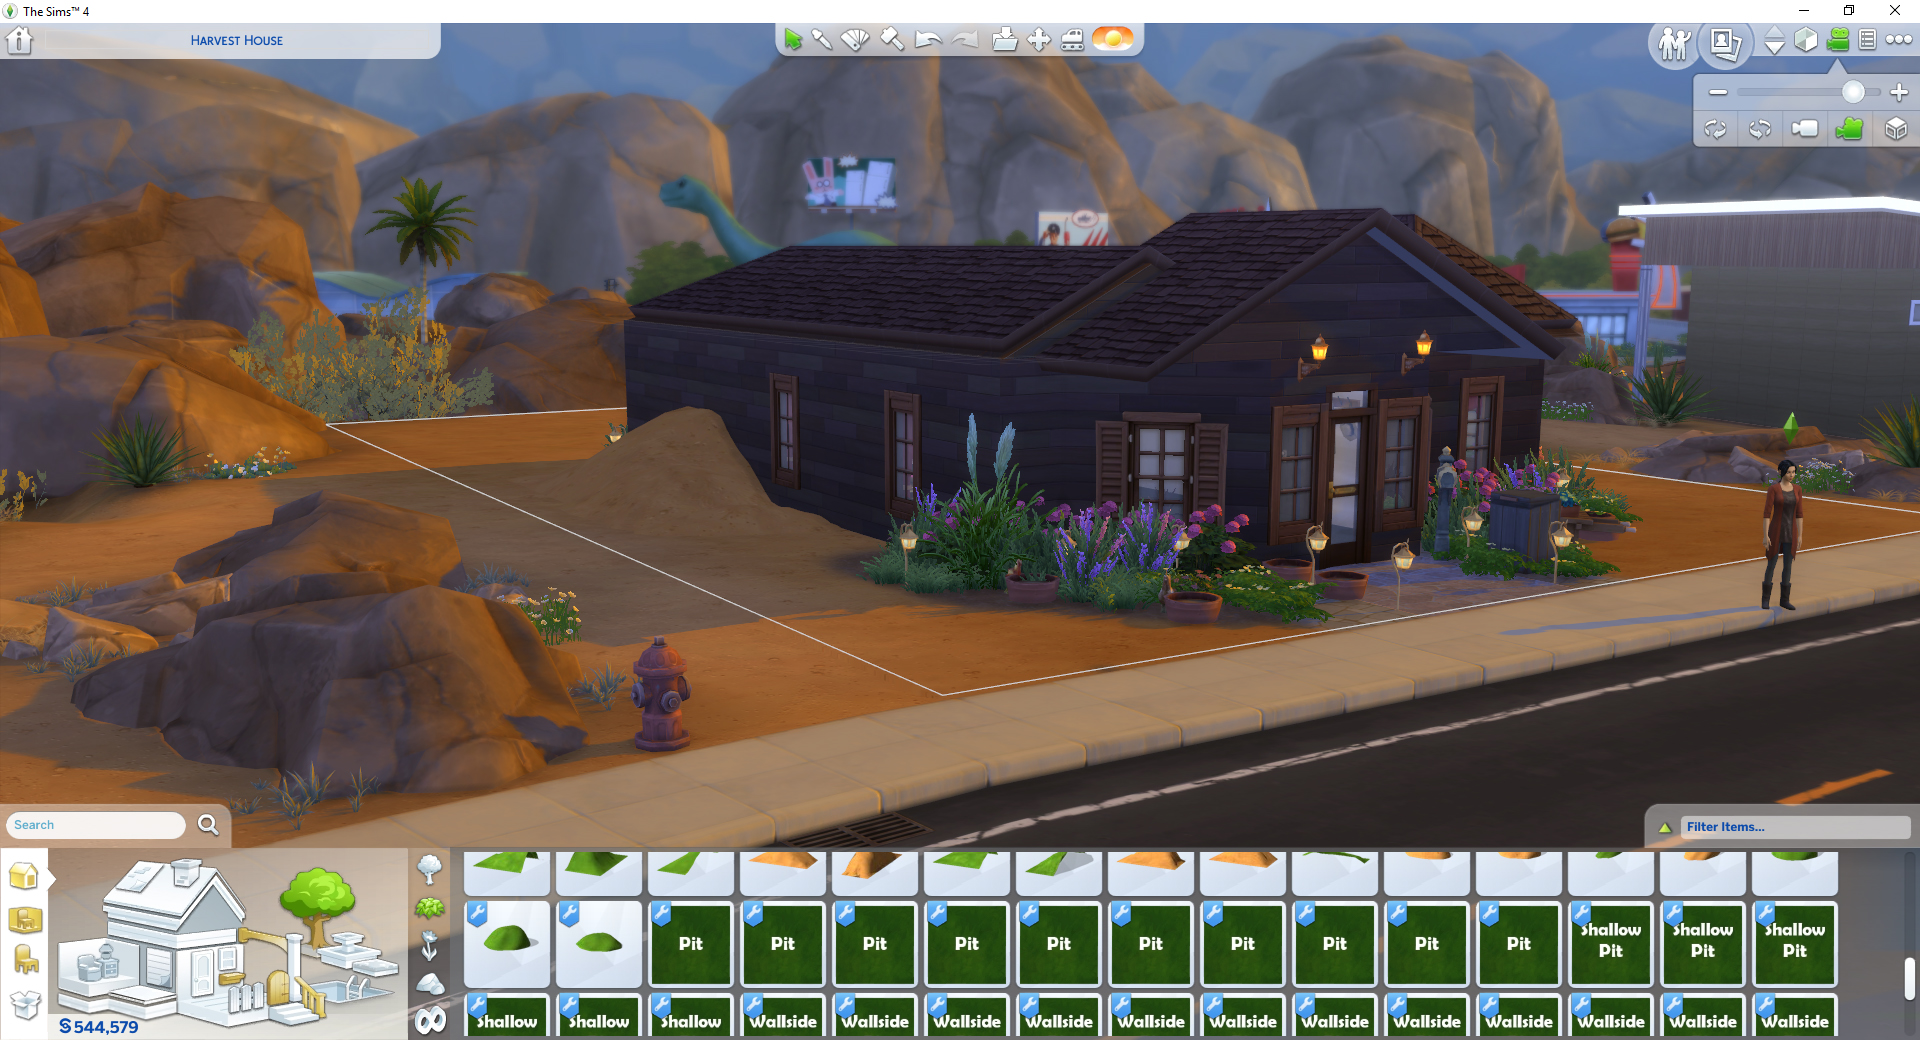 Sims 4' Mods: Terrain Tools Add Basement Windows And Hills To Lots